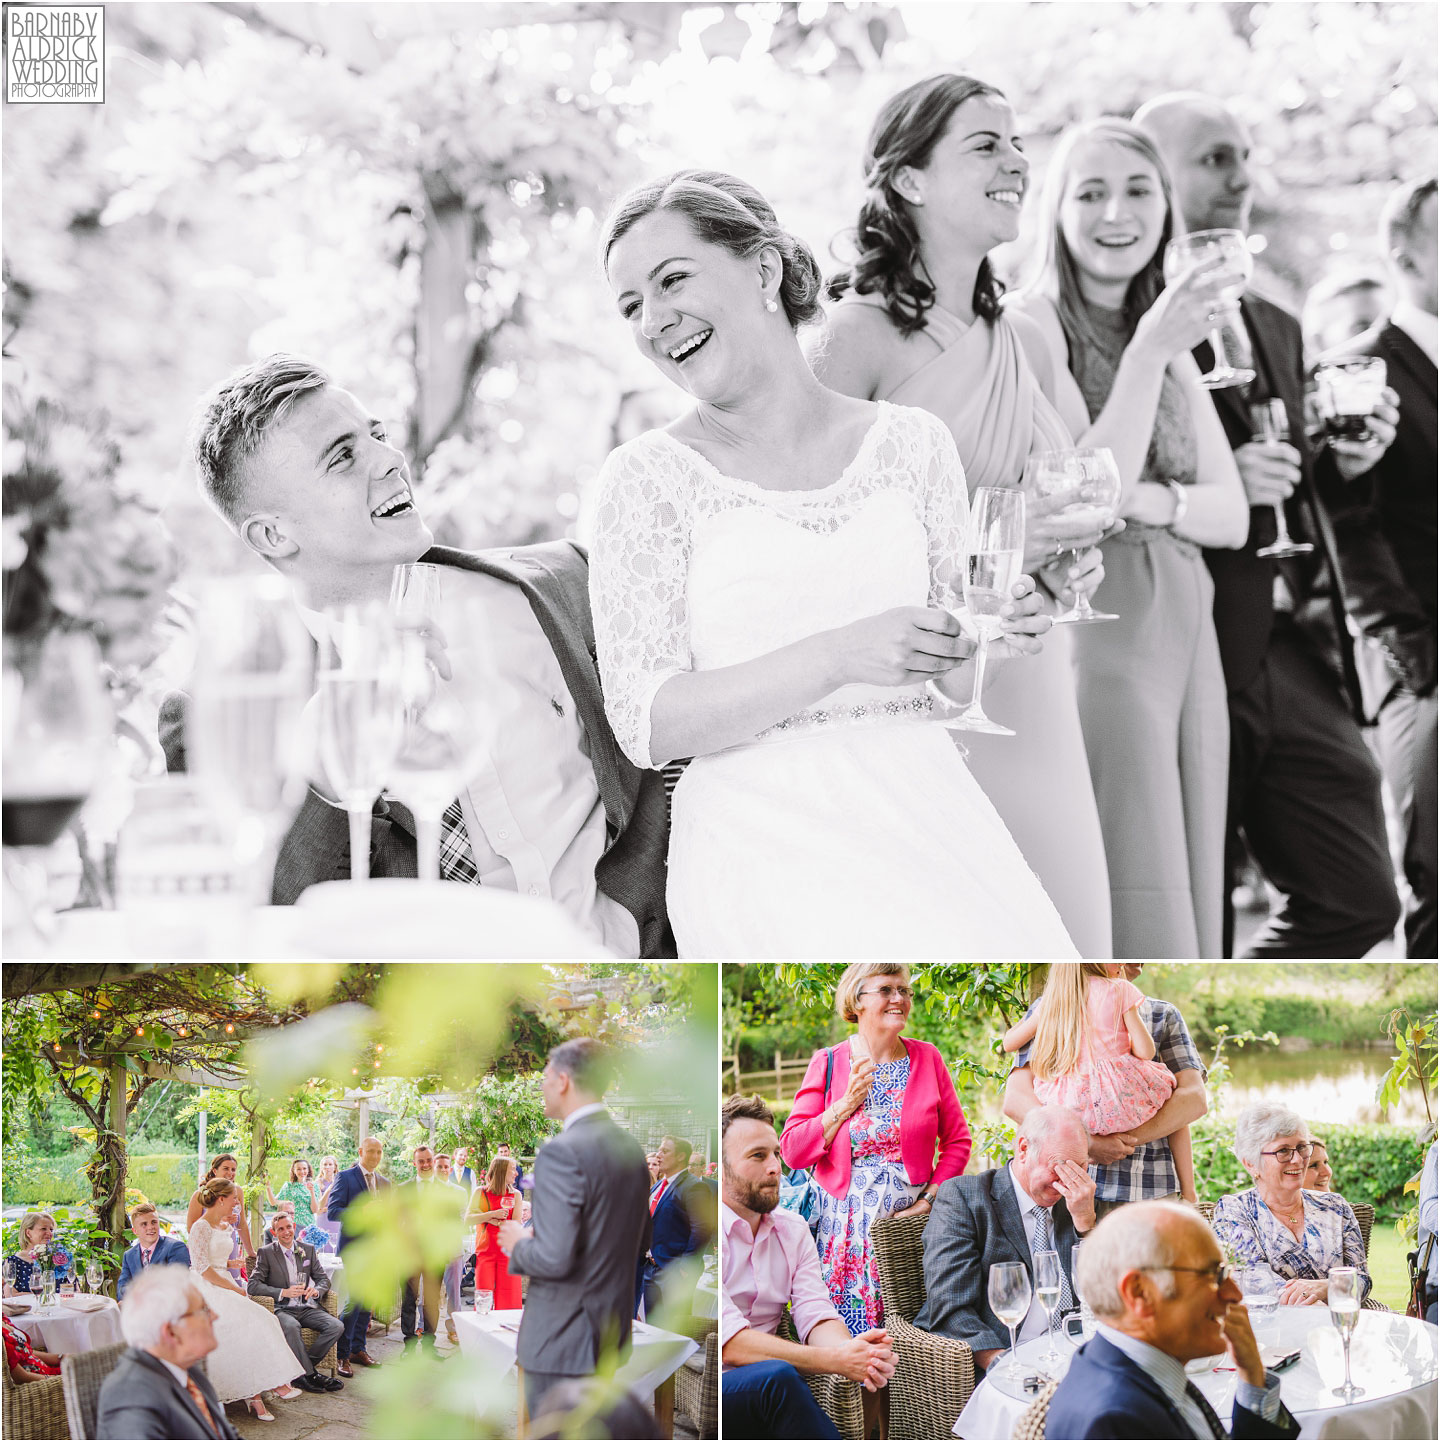 Outdoor Wedding speeches at The Pheasant Hotel Harome, The Pheasant Hotel Wedding Helmsley, Wedding Photography at The Pheasant Hotel North Yorkshire, North Yorkshire Wedding Photographer